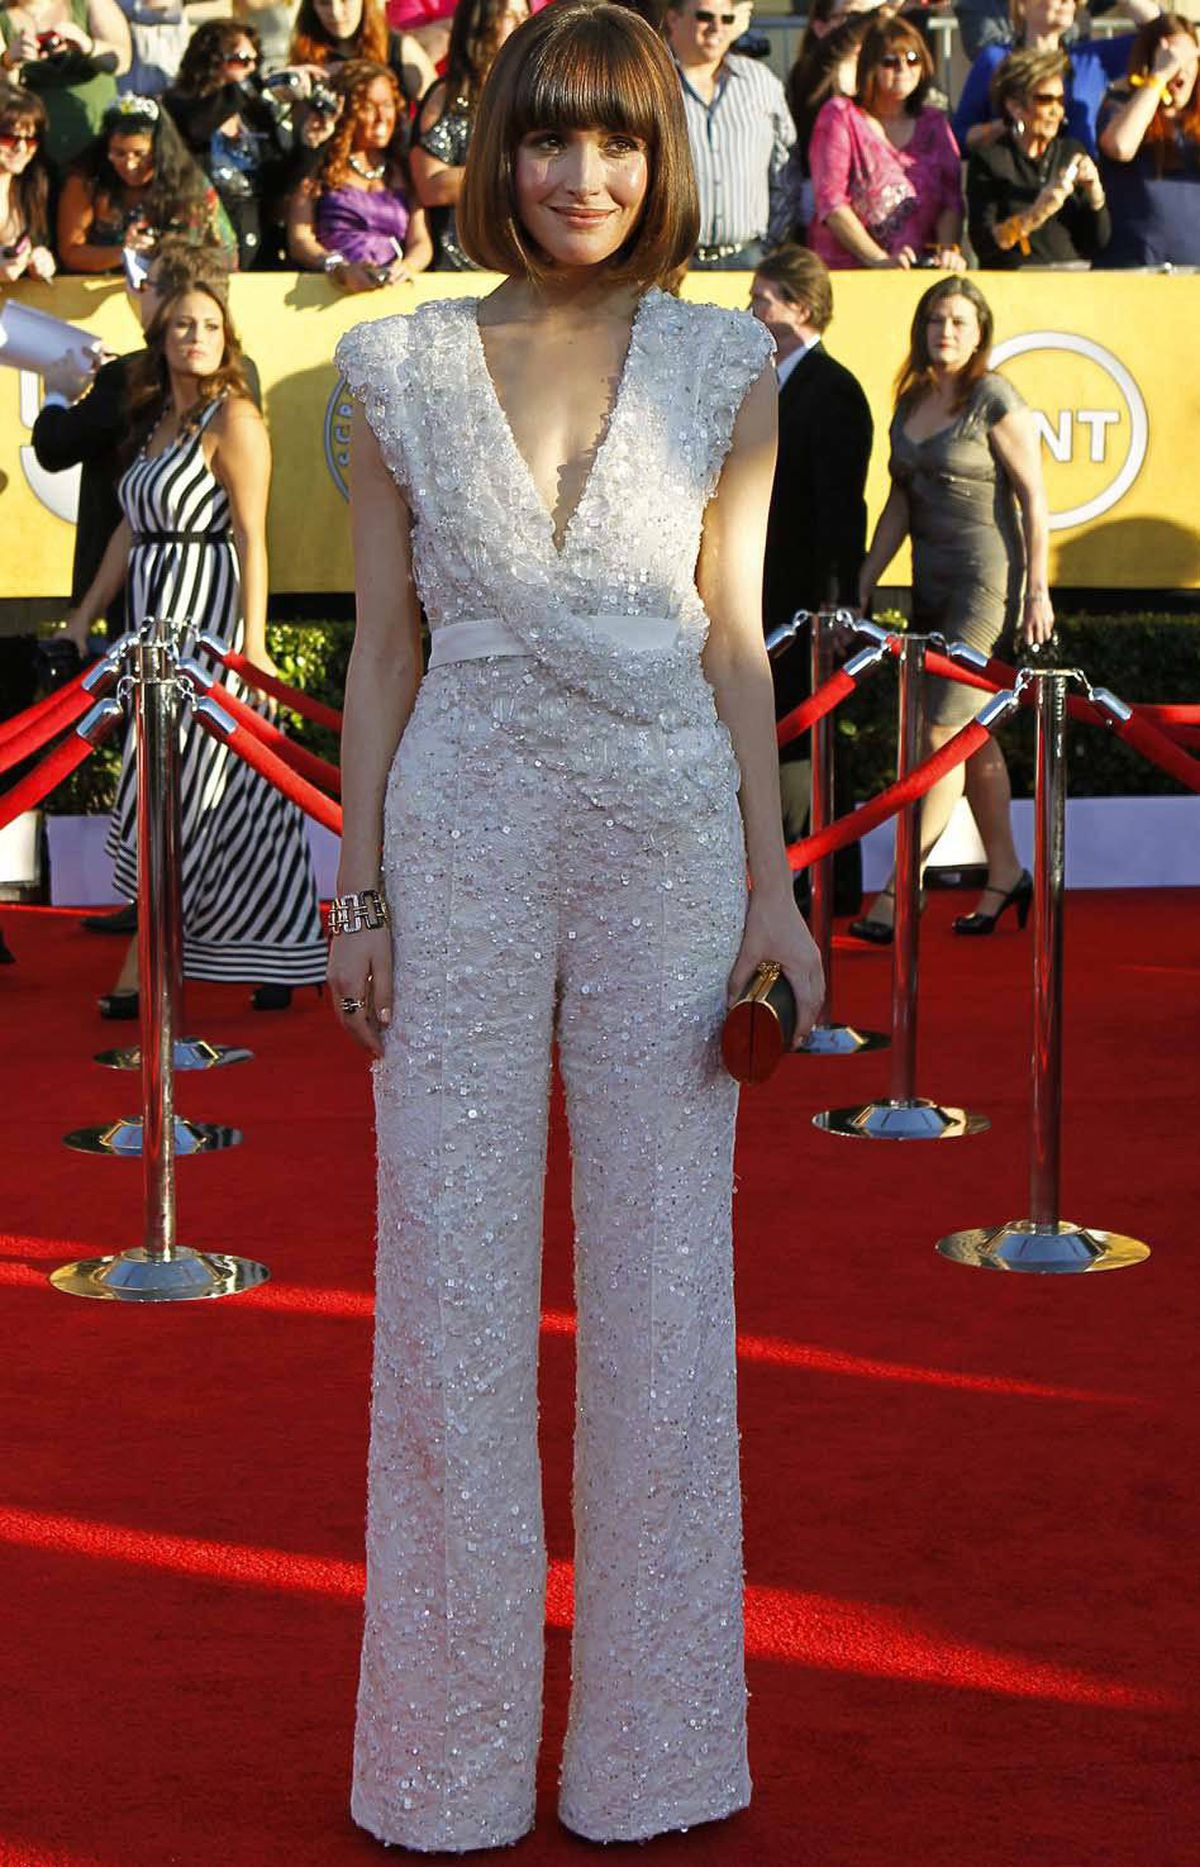 Actress Rose Byrne has Saturday night fever at the SAG awards in Los Angeles Sunday.